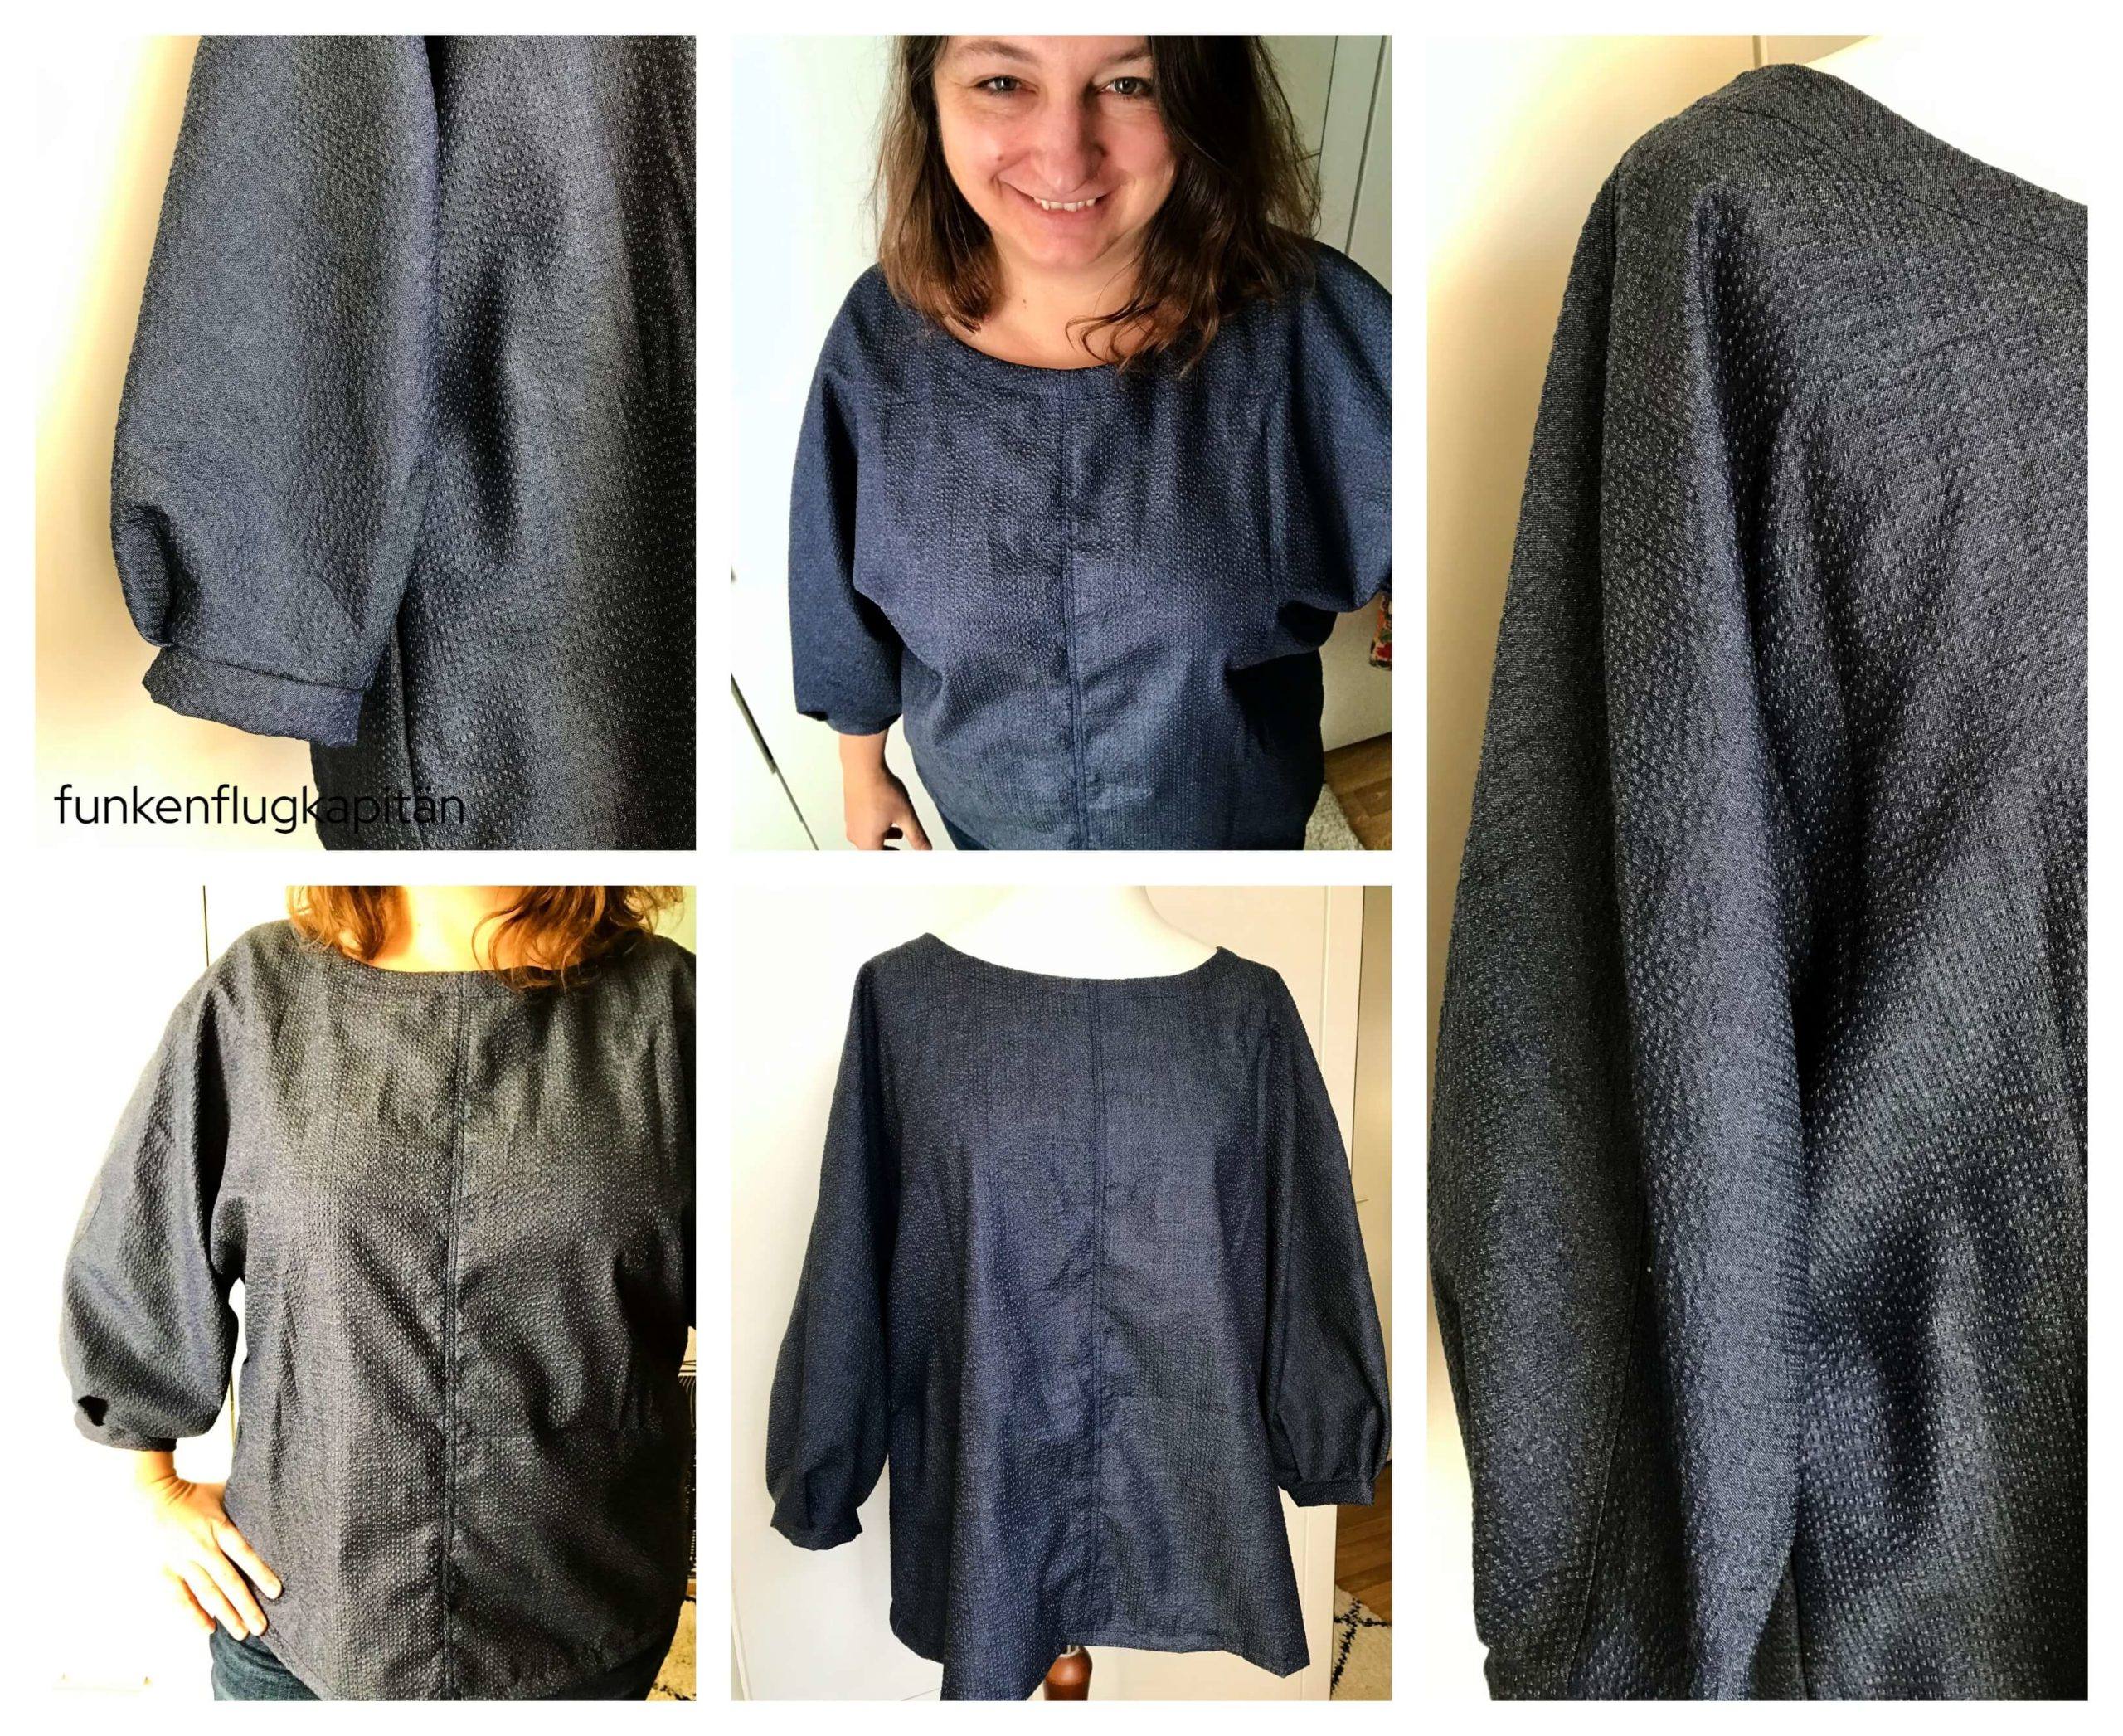 Wilma Woven Top StyleArc Jeanshemdstoff